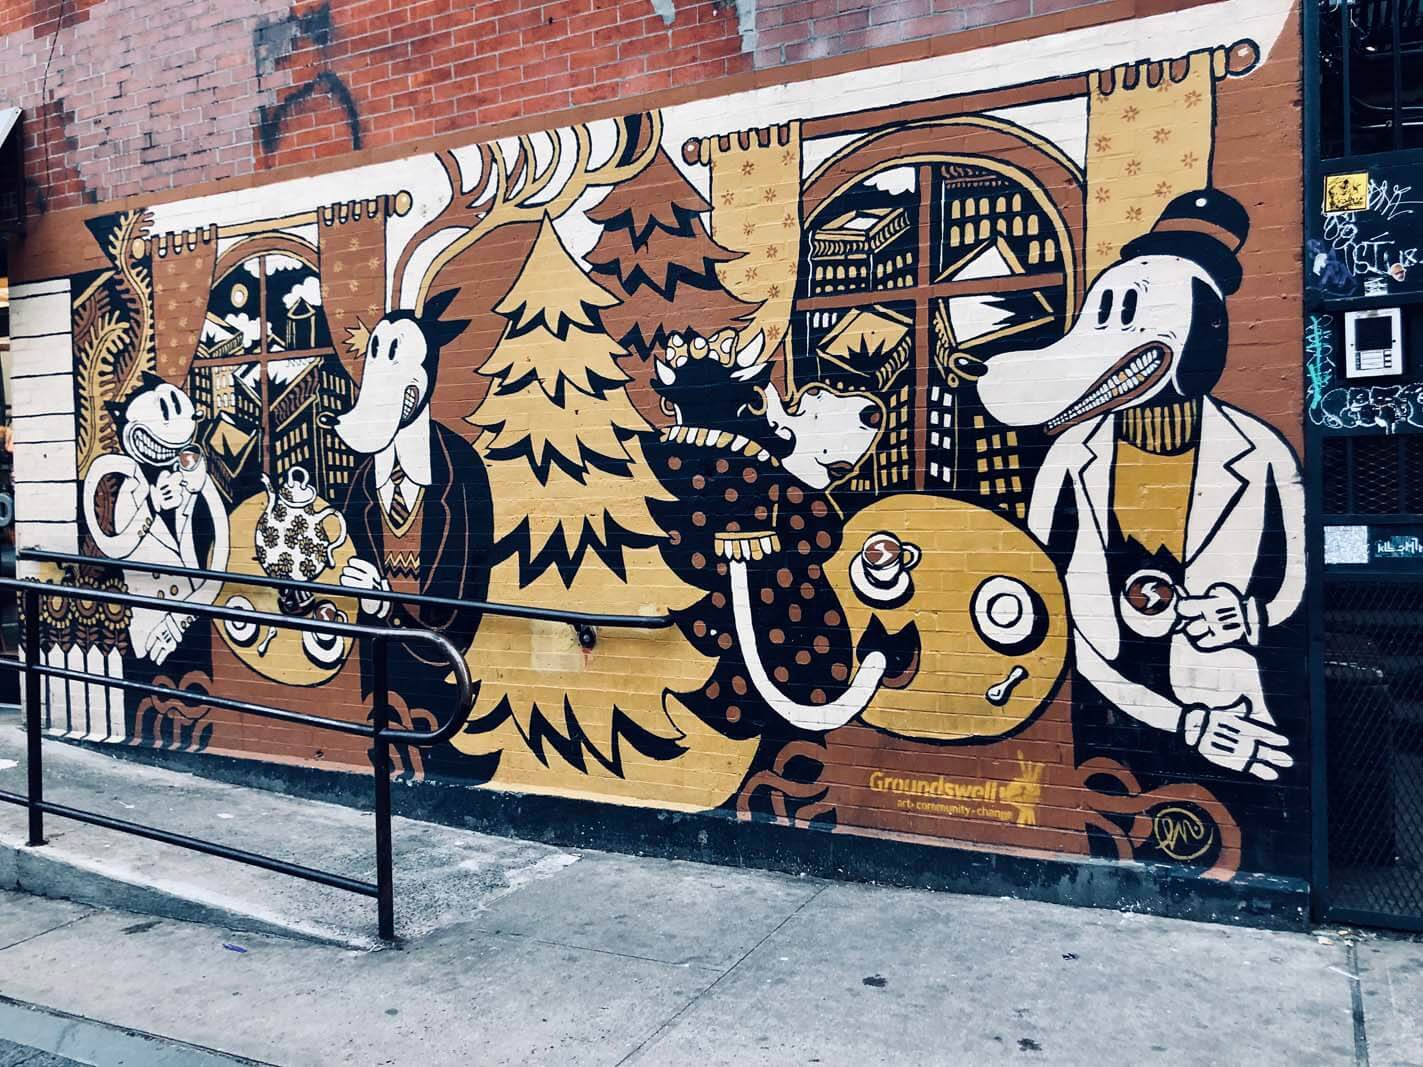 Dunkin Donuts mural in Williamsburg by Groundswell